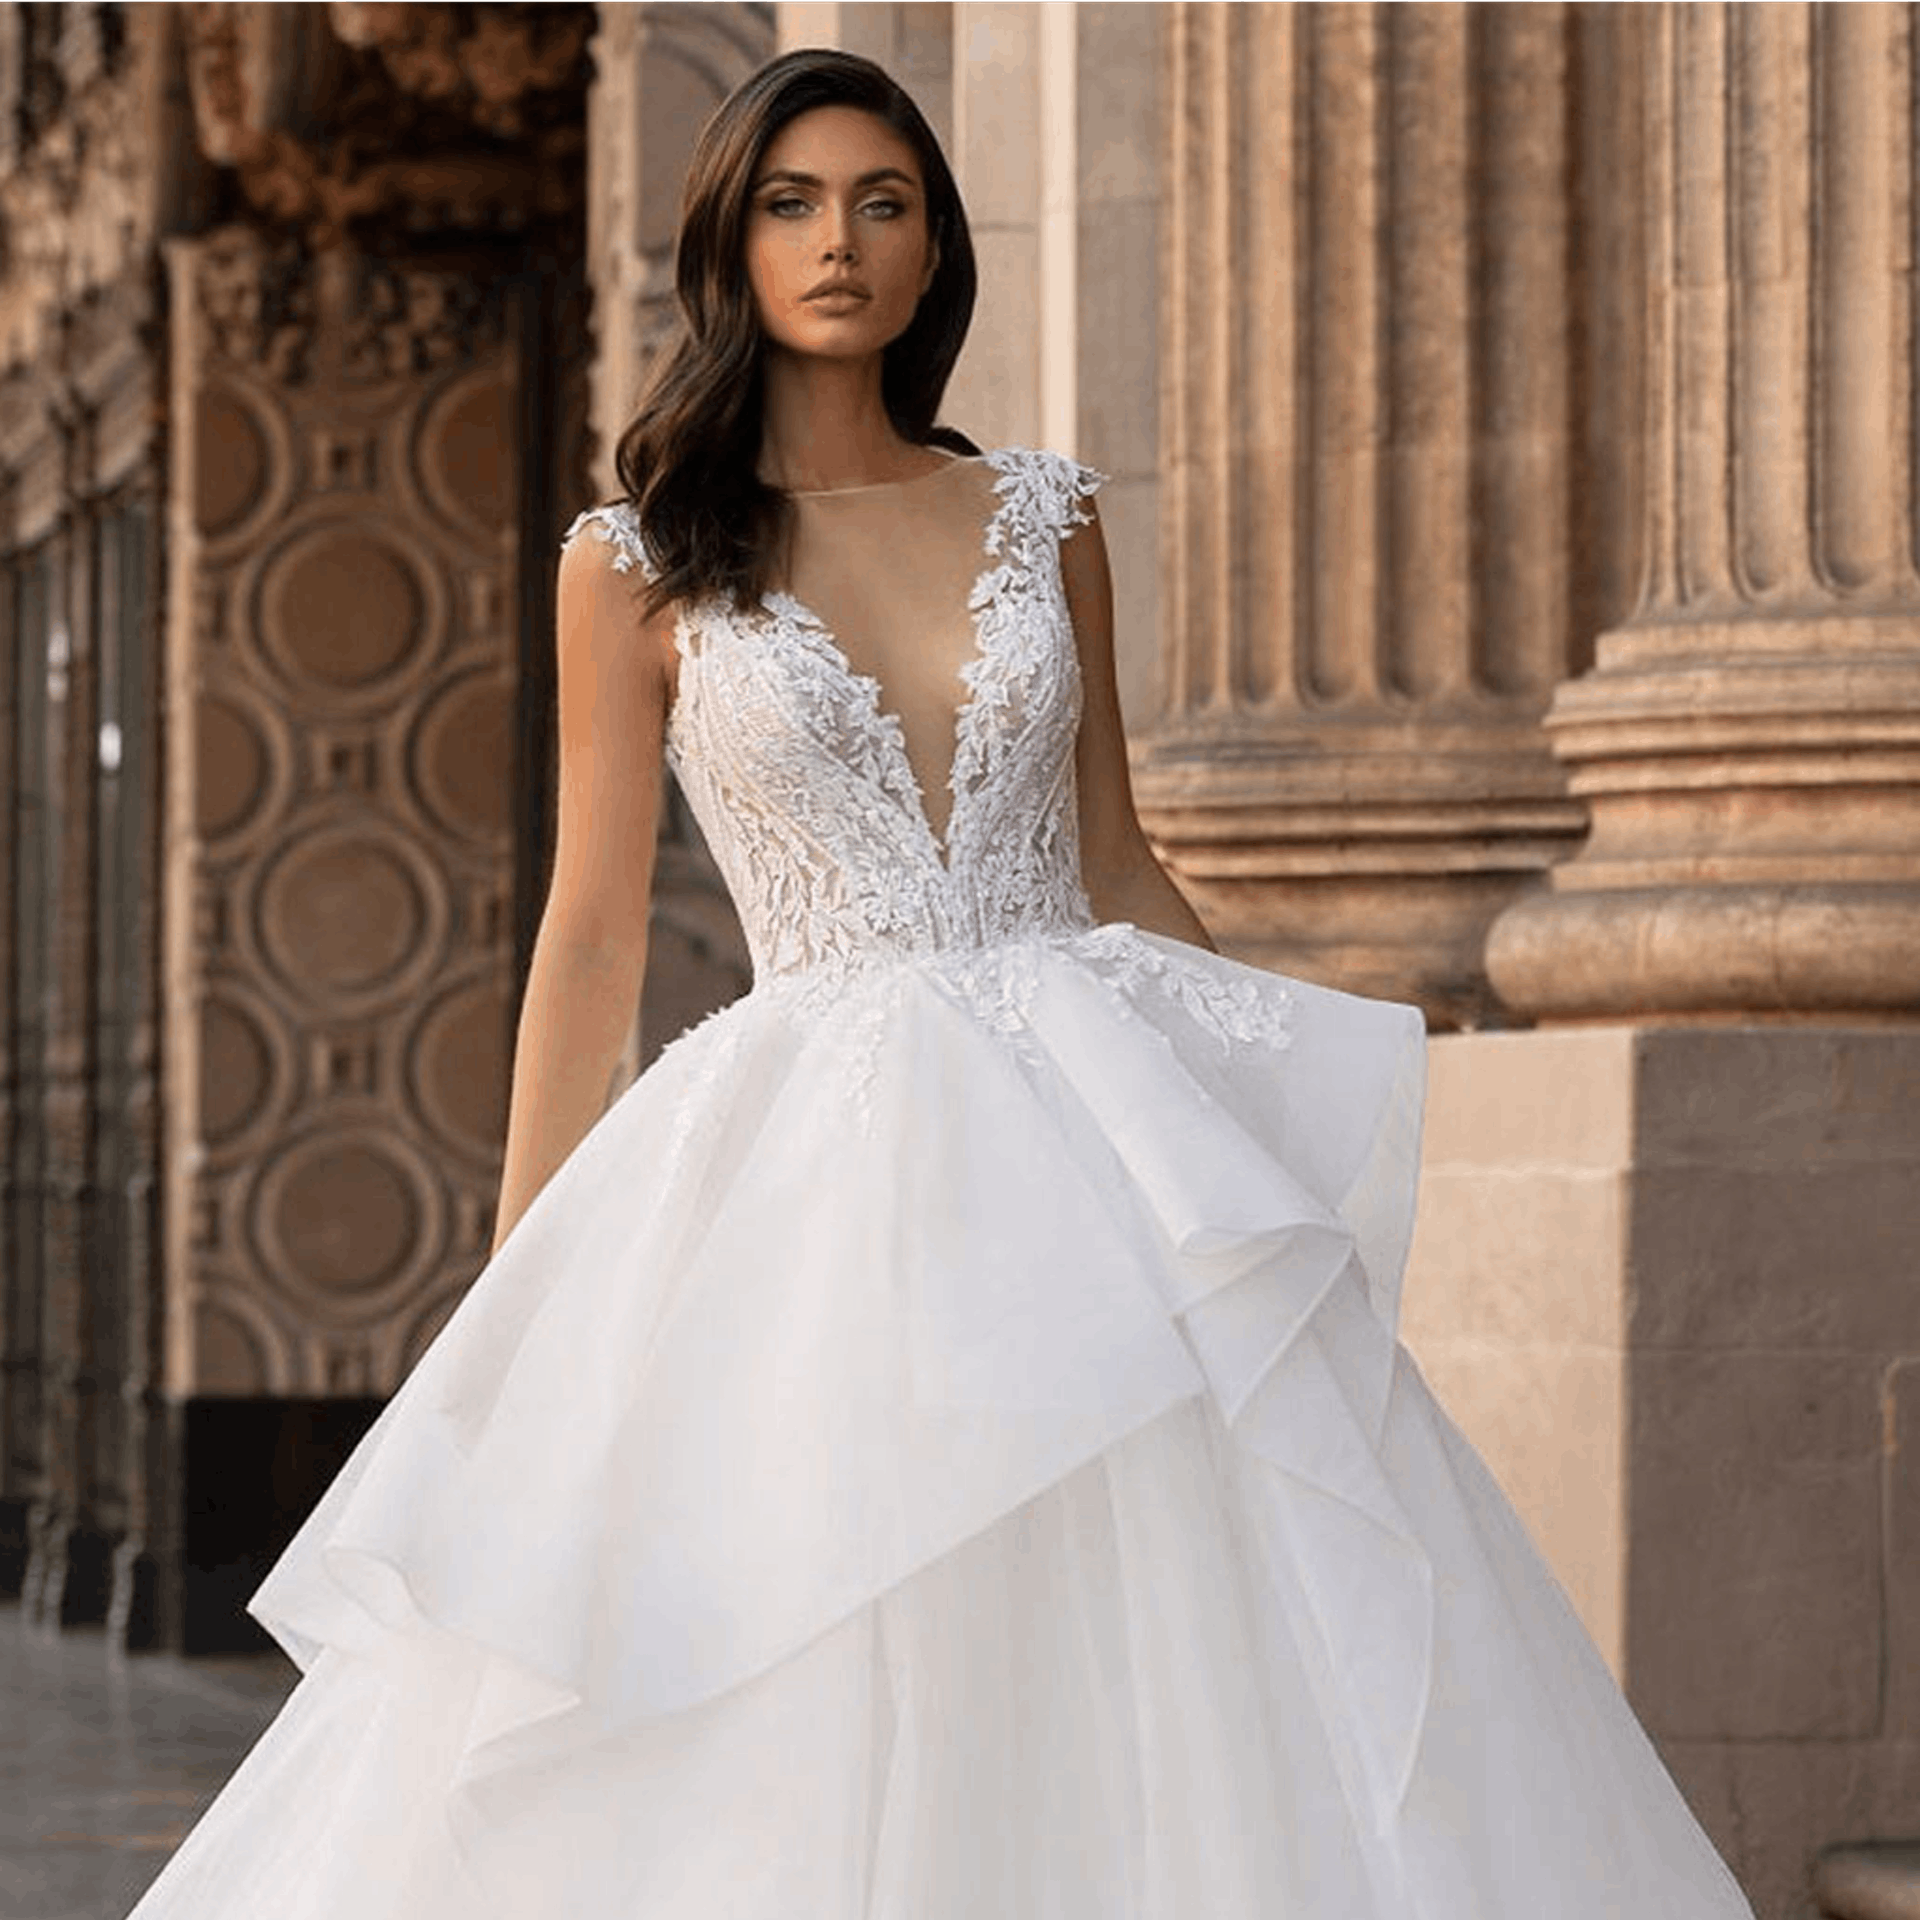 Woman in Pronovias Lace bodice and tulle skirt wedding dress